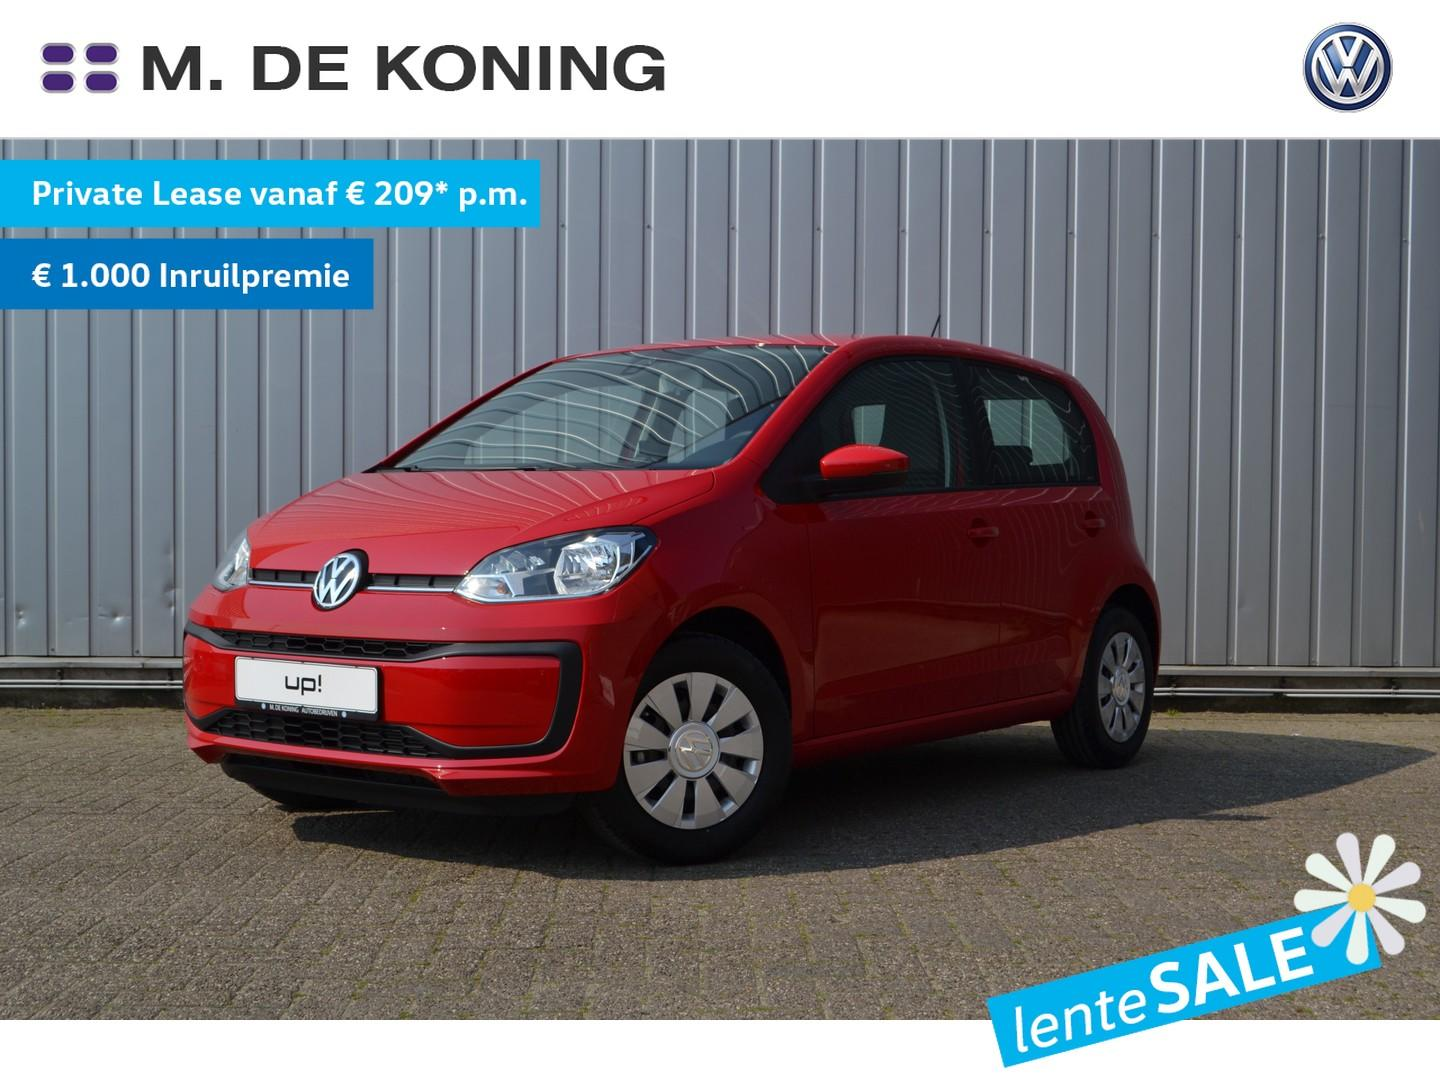 Volkswagen Up! 1.0 60pk move up! · regensensor · airconditioning · radio 'composition phone'